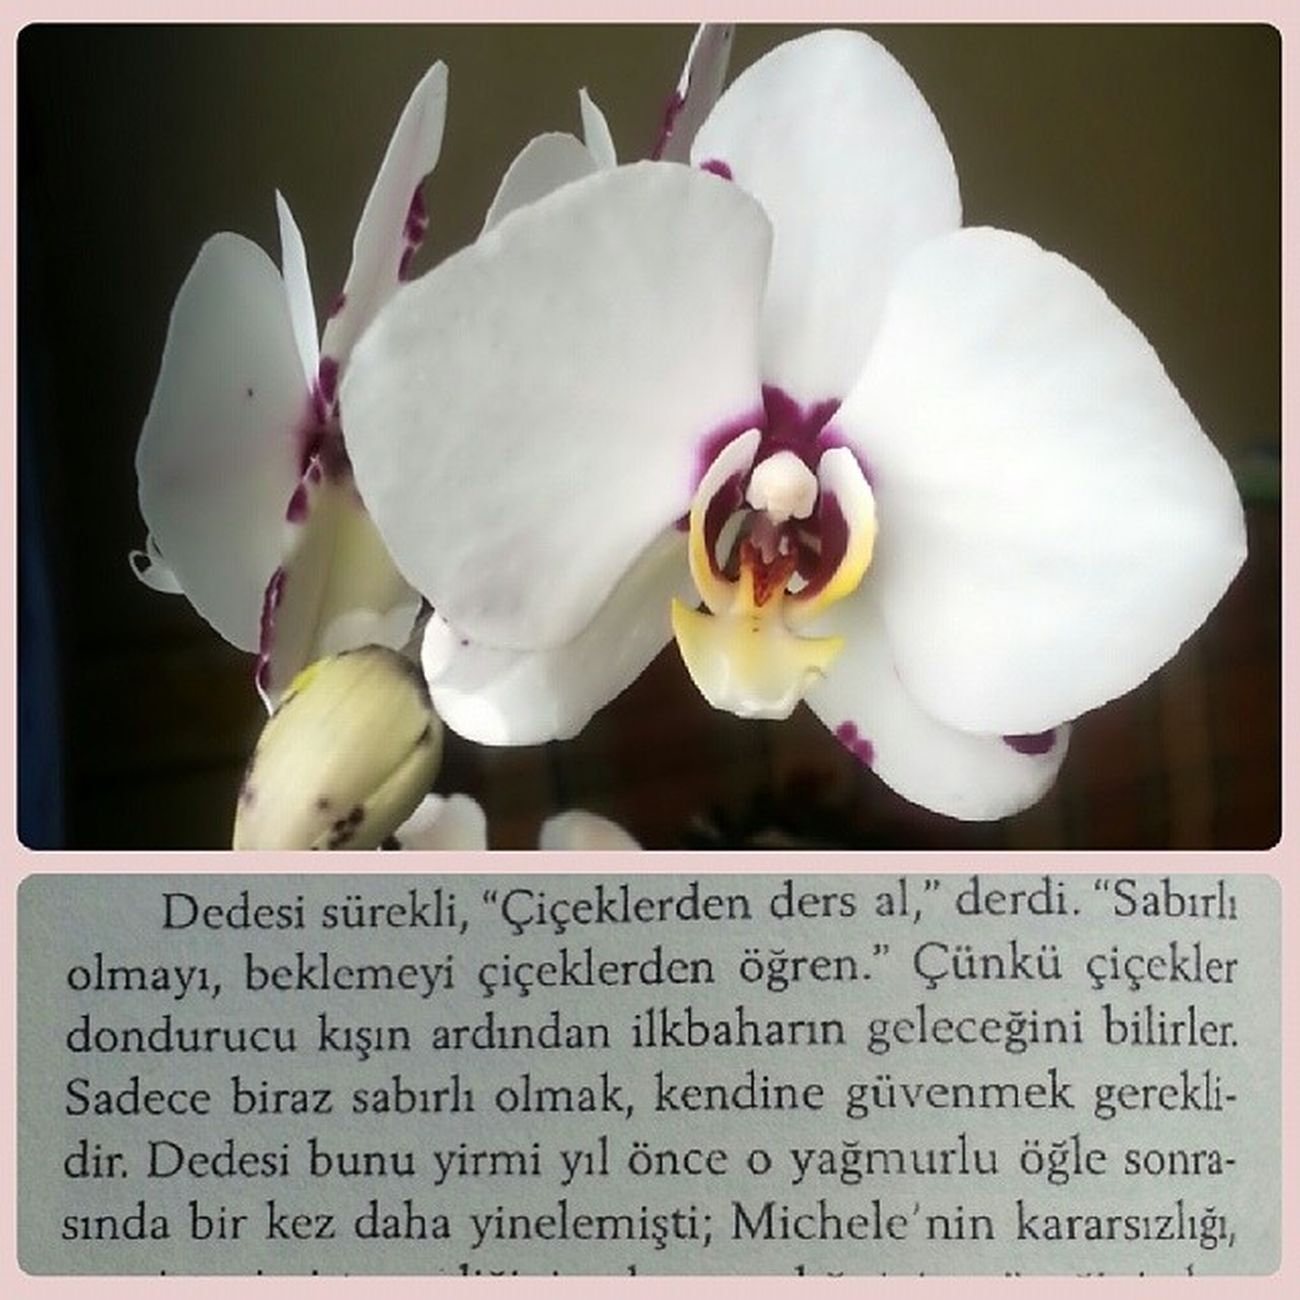 Ciceklerden ders al! çiçek Kitap Orkide Flower Instaflower Book Istanbulkirmizisi Kitapkurdu Nature Reading Beautiful Orkide Okumak Aniyakala Popular Turkishbloggers Turkishfollowers Orchids Books Instagramturkiye Instaturk Nature